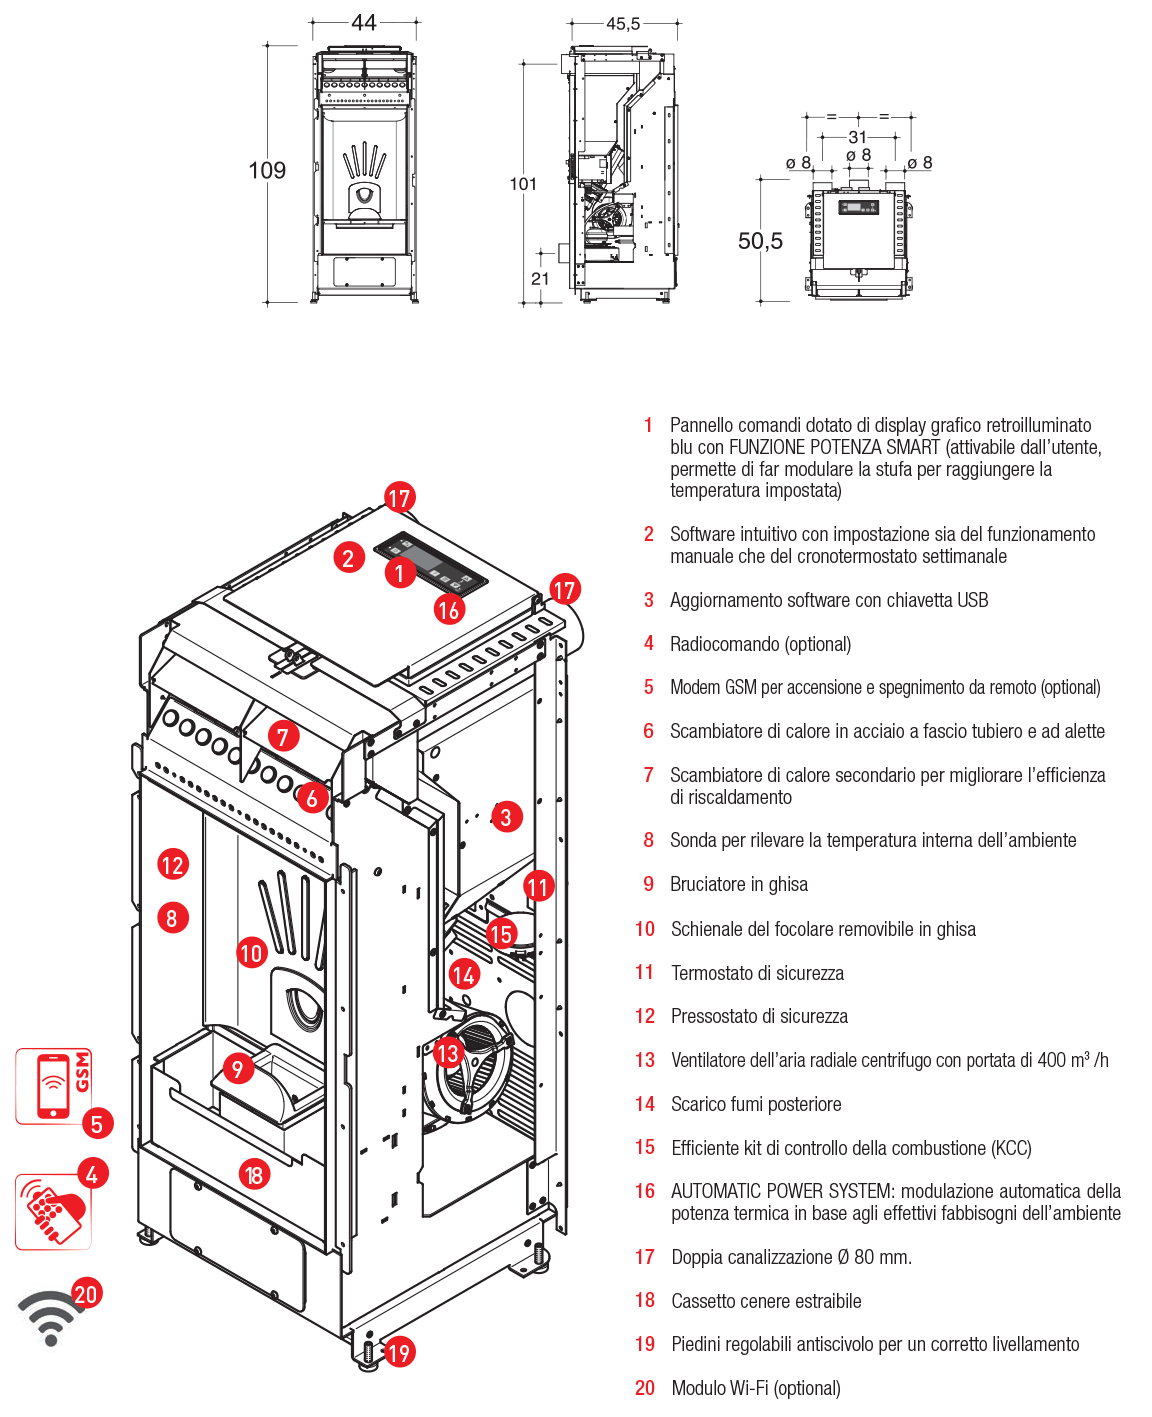 pellet stove with a system of forced convection, ducted